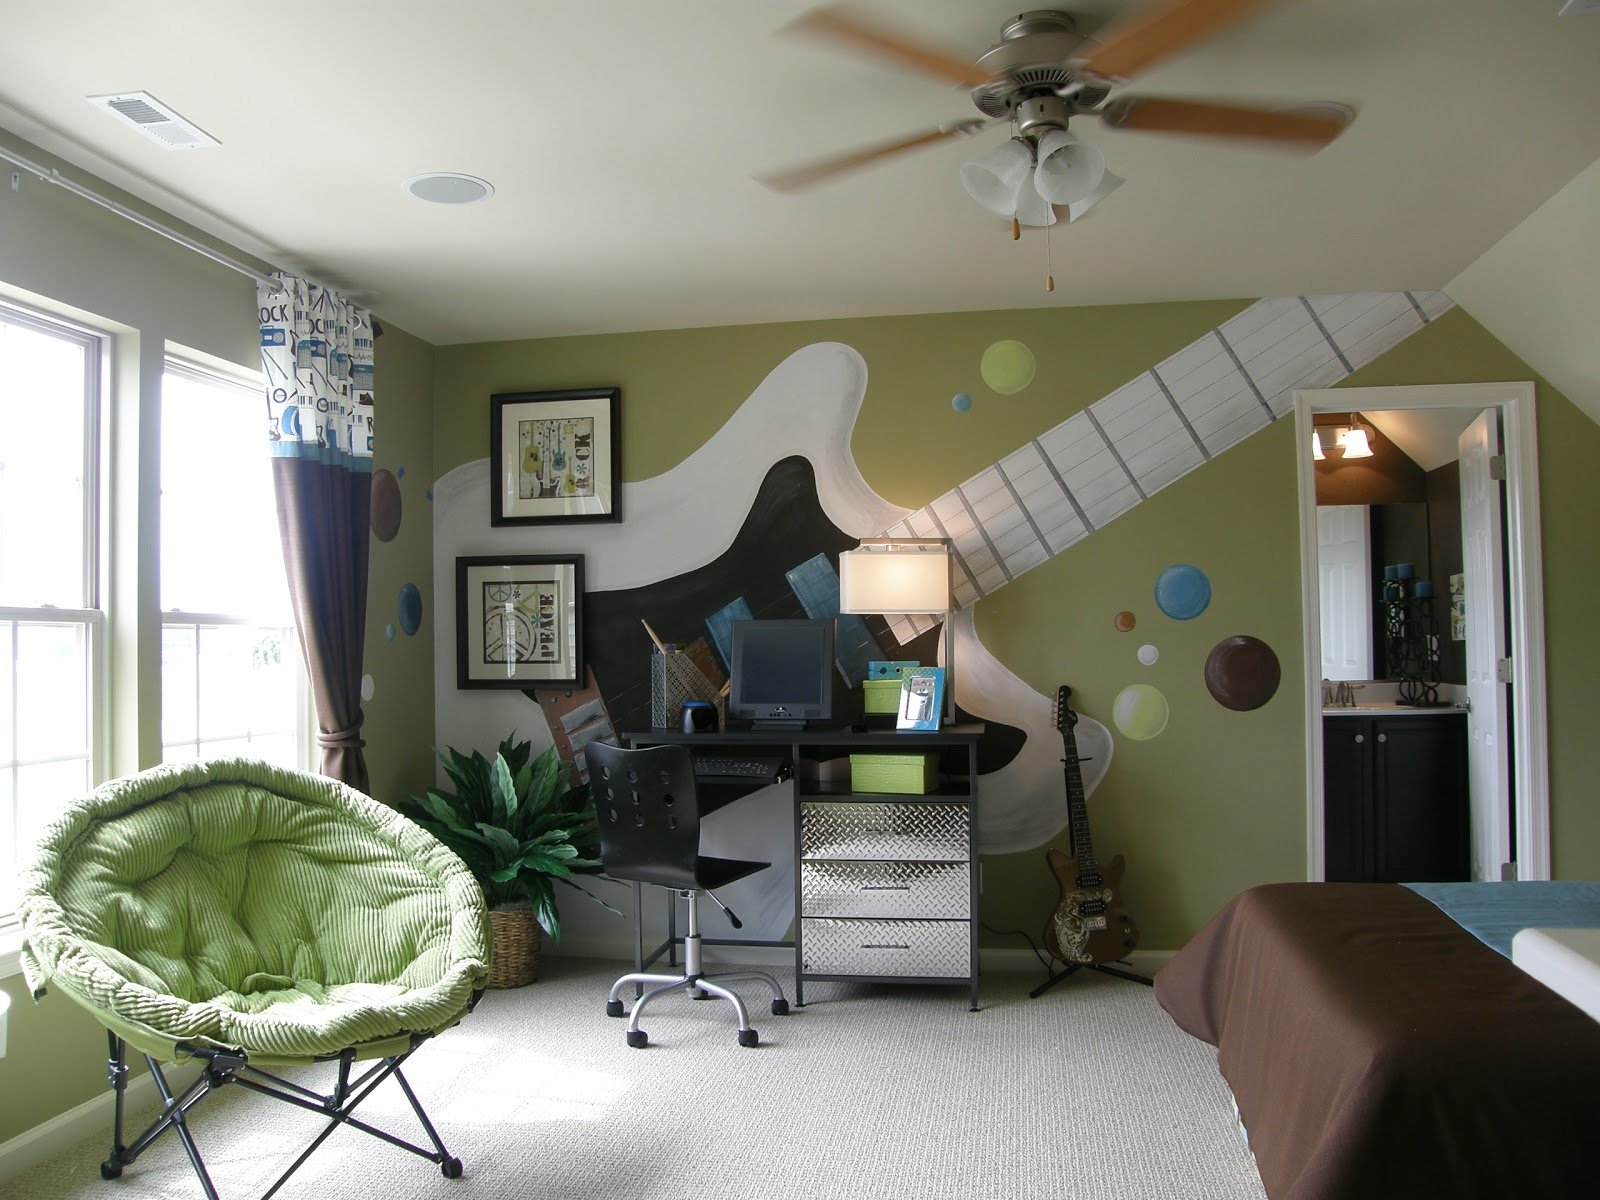 Jam session teen bedroom design dazzle - Teen boys bedroom decorating ideas ...